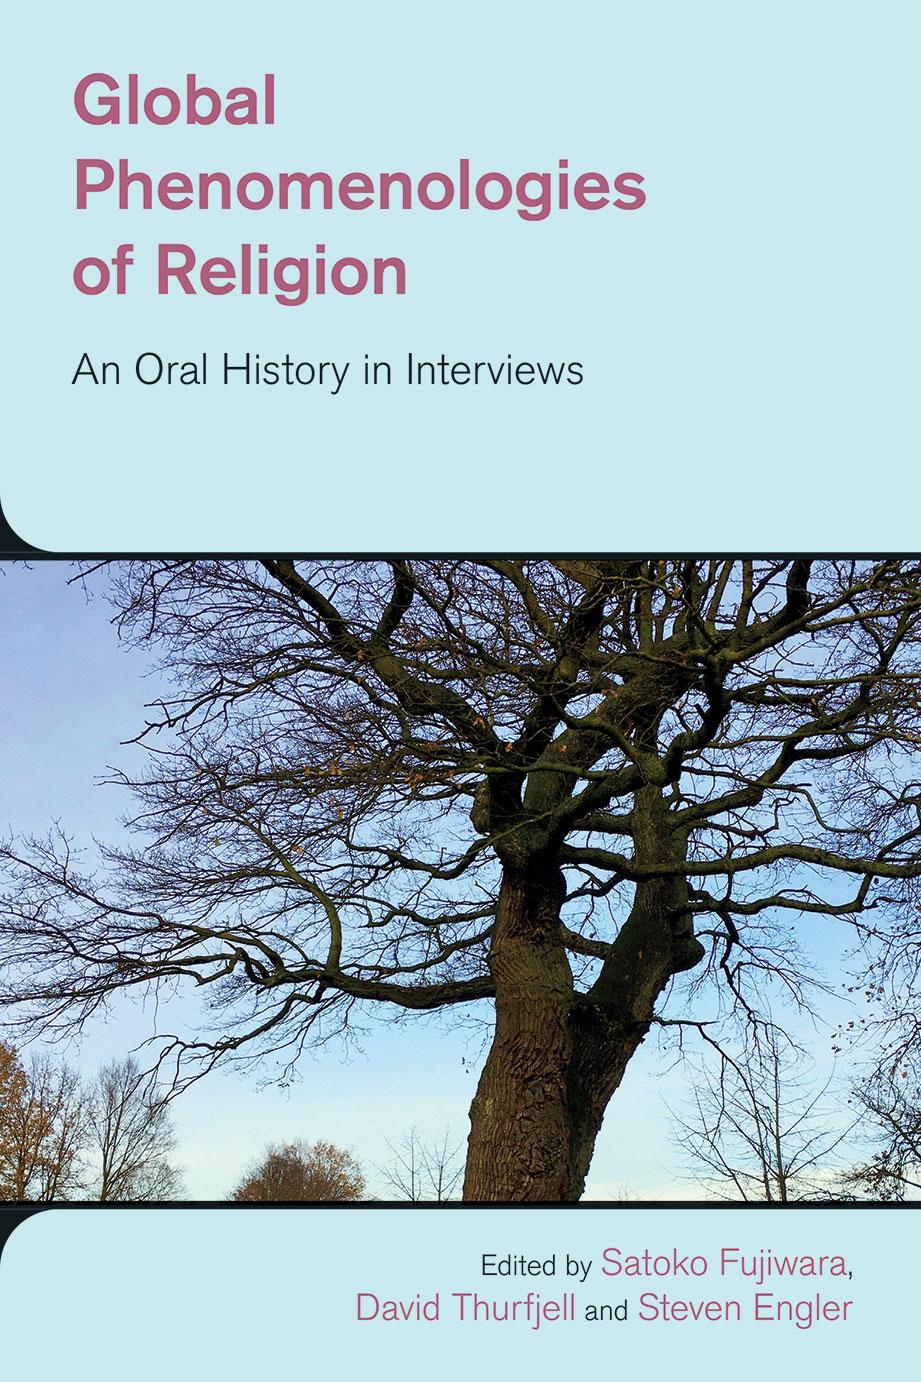 Global Phenomenologies of Religion - An Oral History in Interviews - Satoko Fujiwara Executive Editor